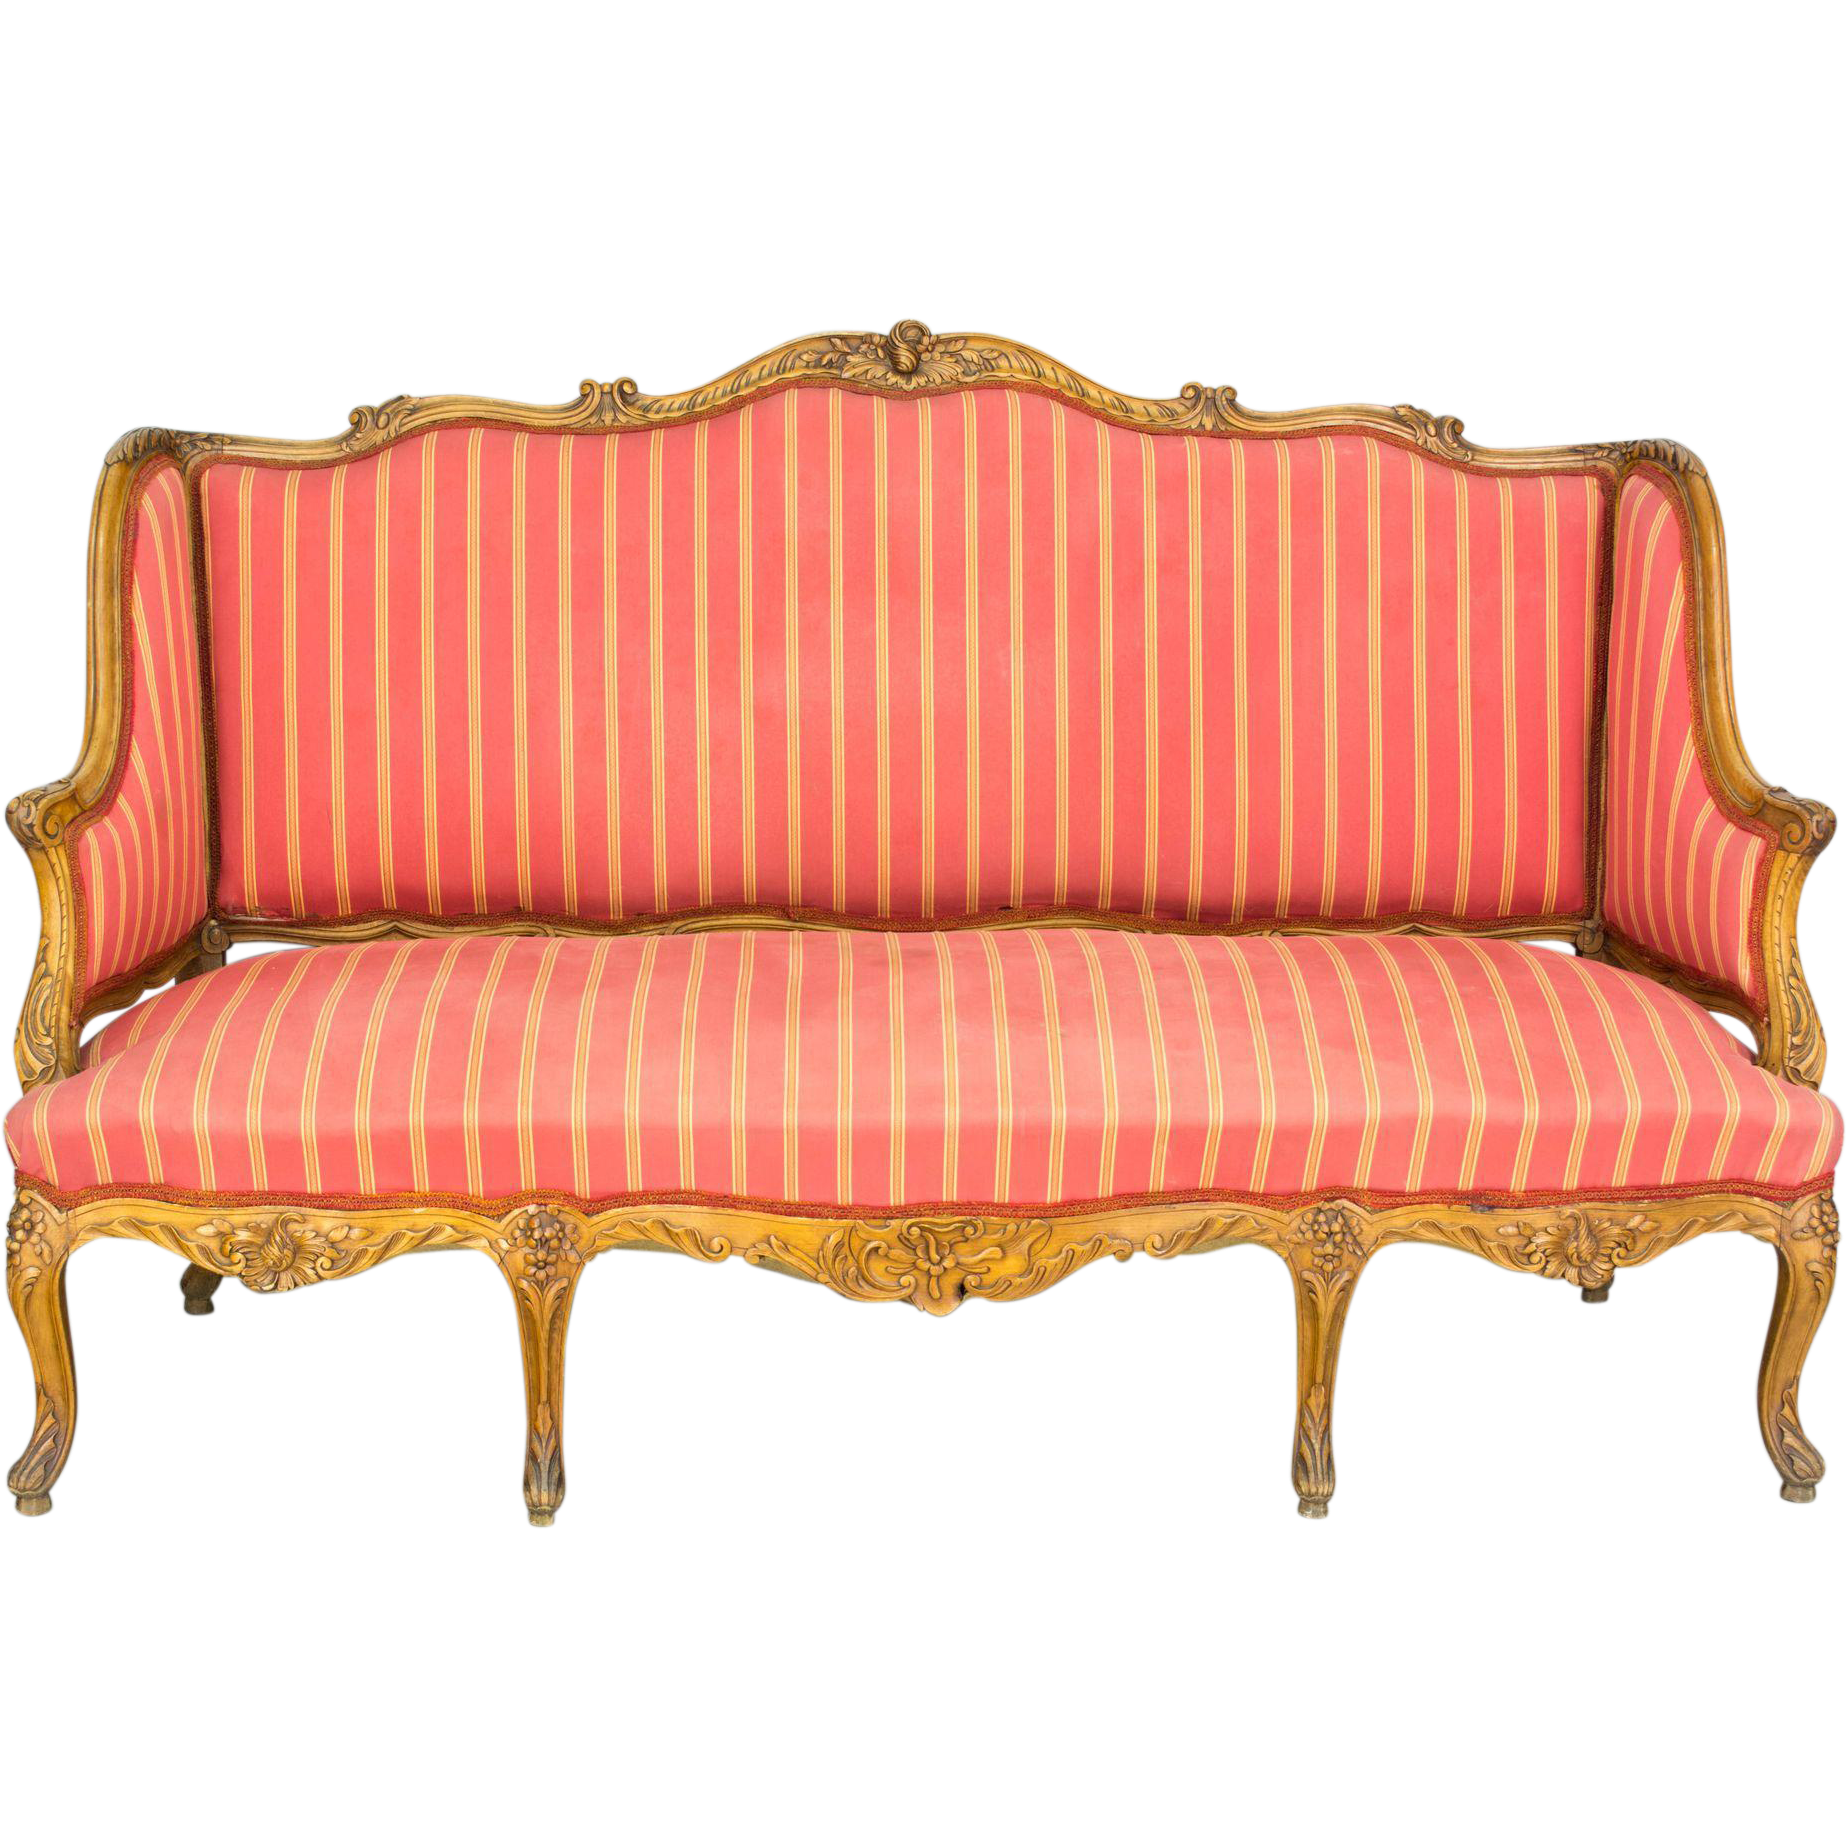 19th century louis xv style sofa or canape from ofleury on for Louis xv canape sofa